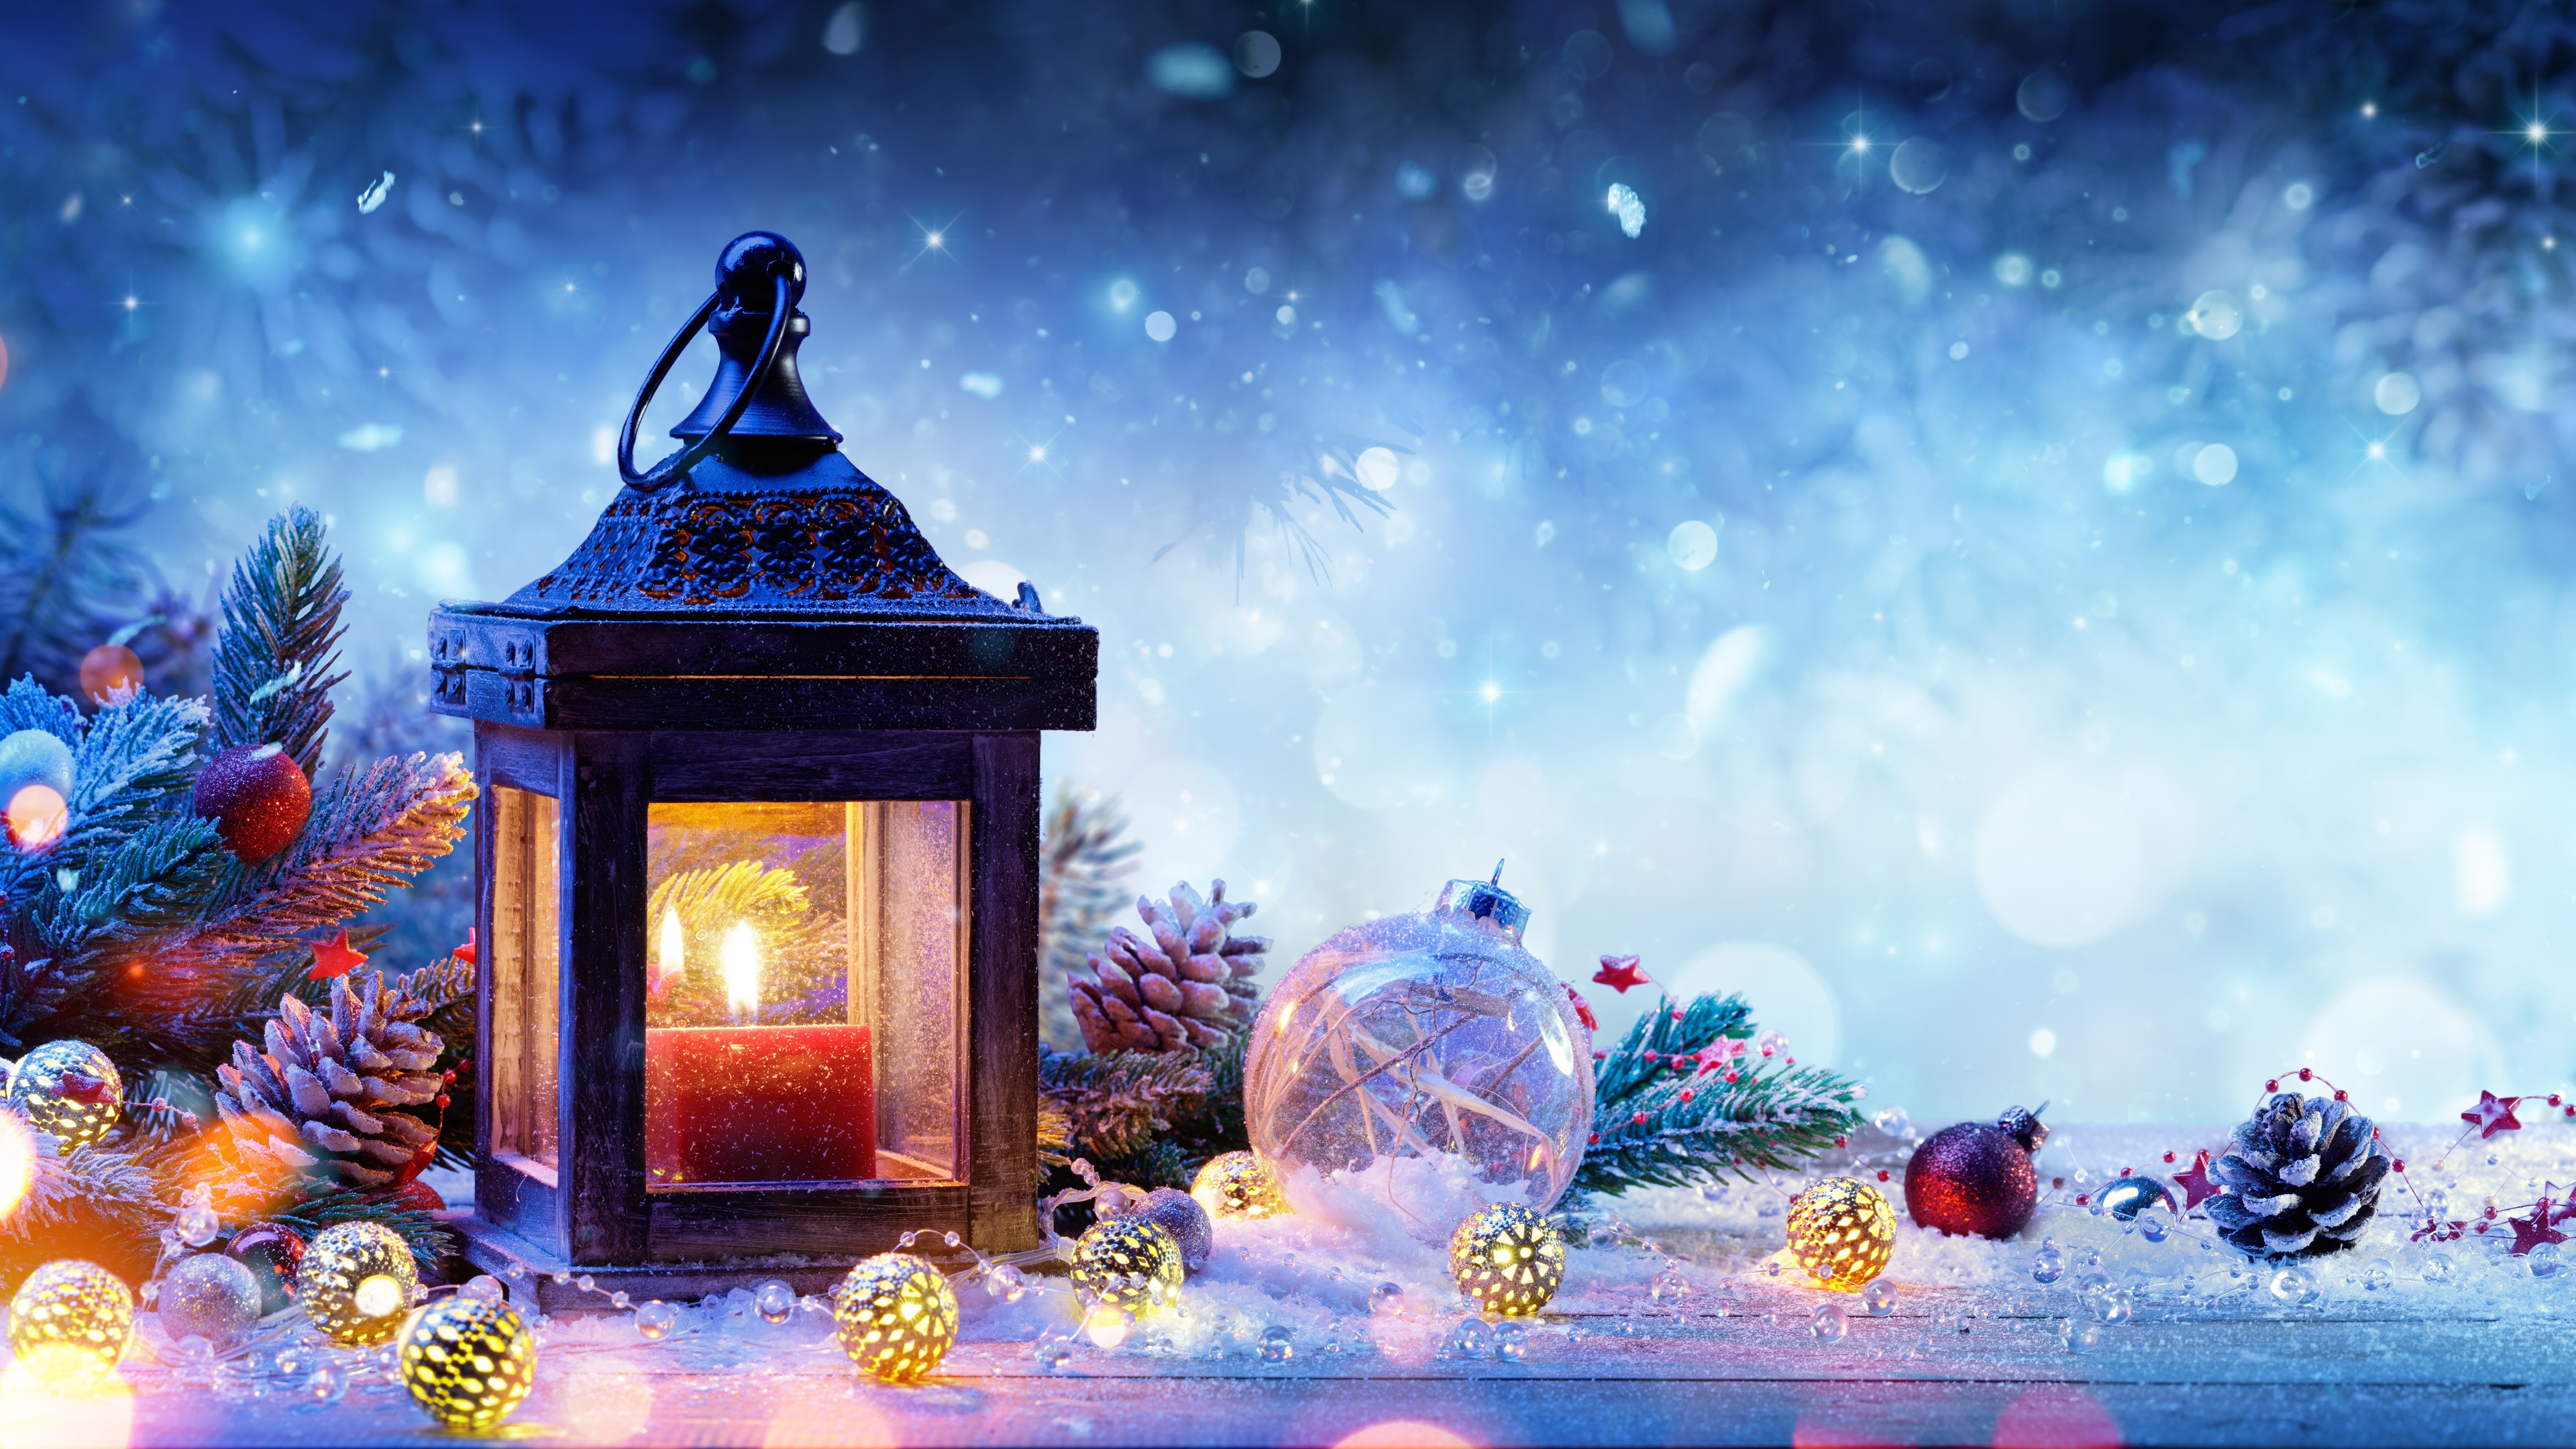 wallpaper christmas decorations spruce snow lamp background wallpaper merry christmas 3118189 hd wallpaper backgrounds download background wallpaper merry christmas